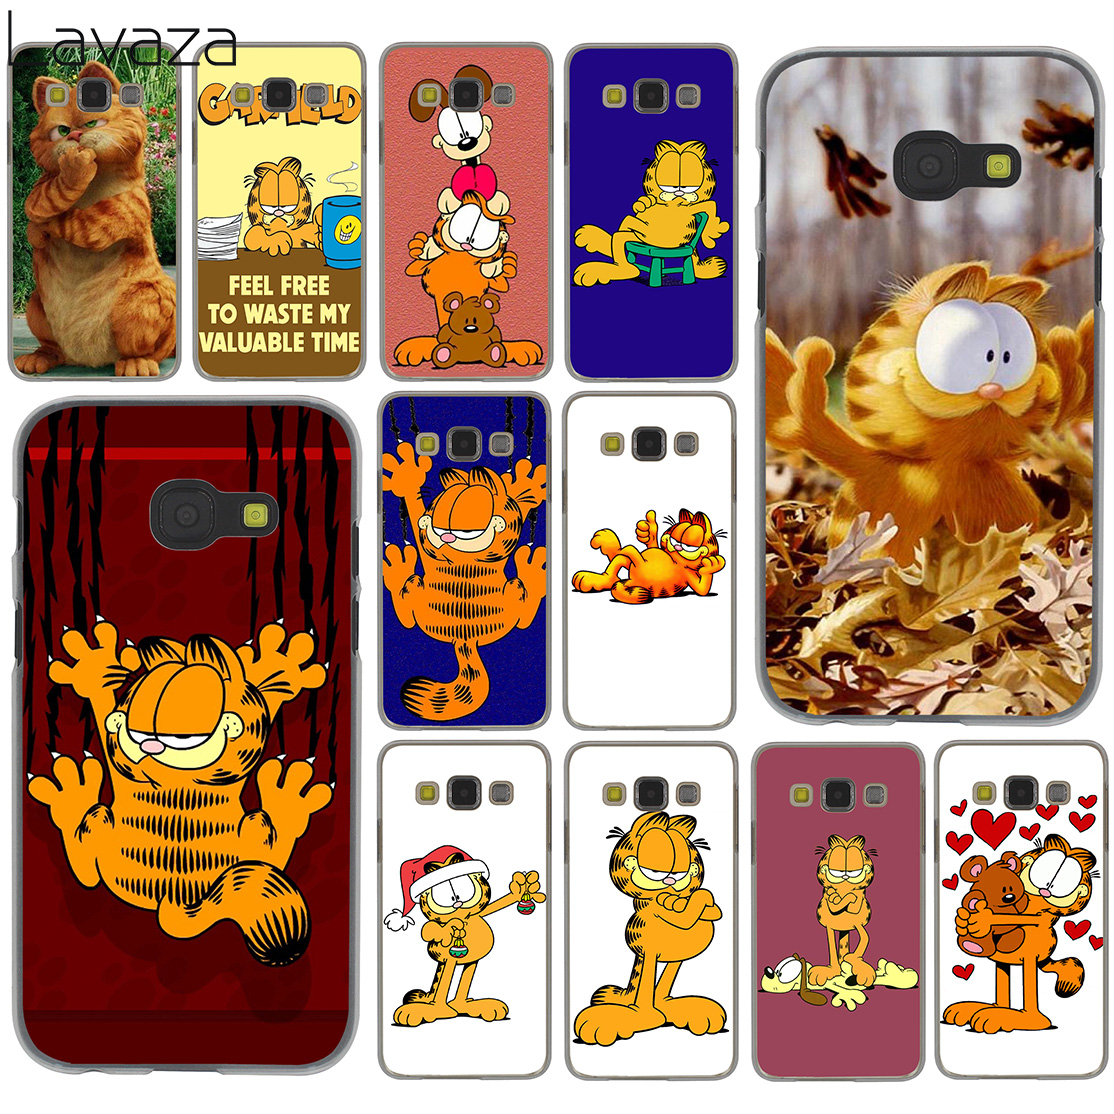 Lavaza cute lovely մուլտֆիլմ garfield Case for Samsung Galaxy Note 10 9 8 A9 A8 A7 A6 Plus 2018 A5 A3 2015 2016 2017 A2 Cover